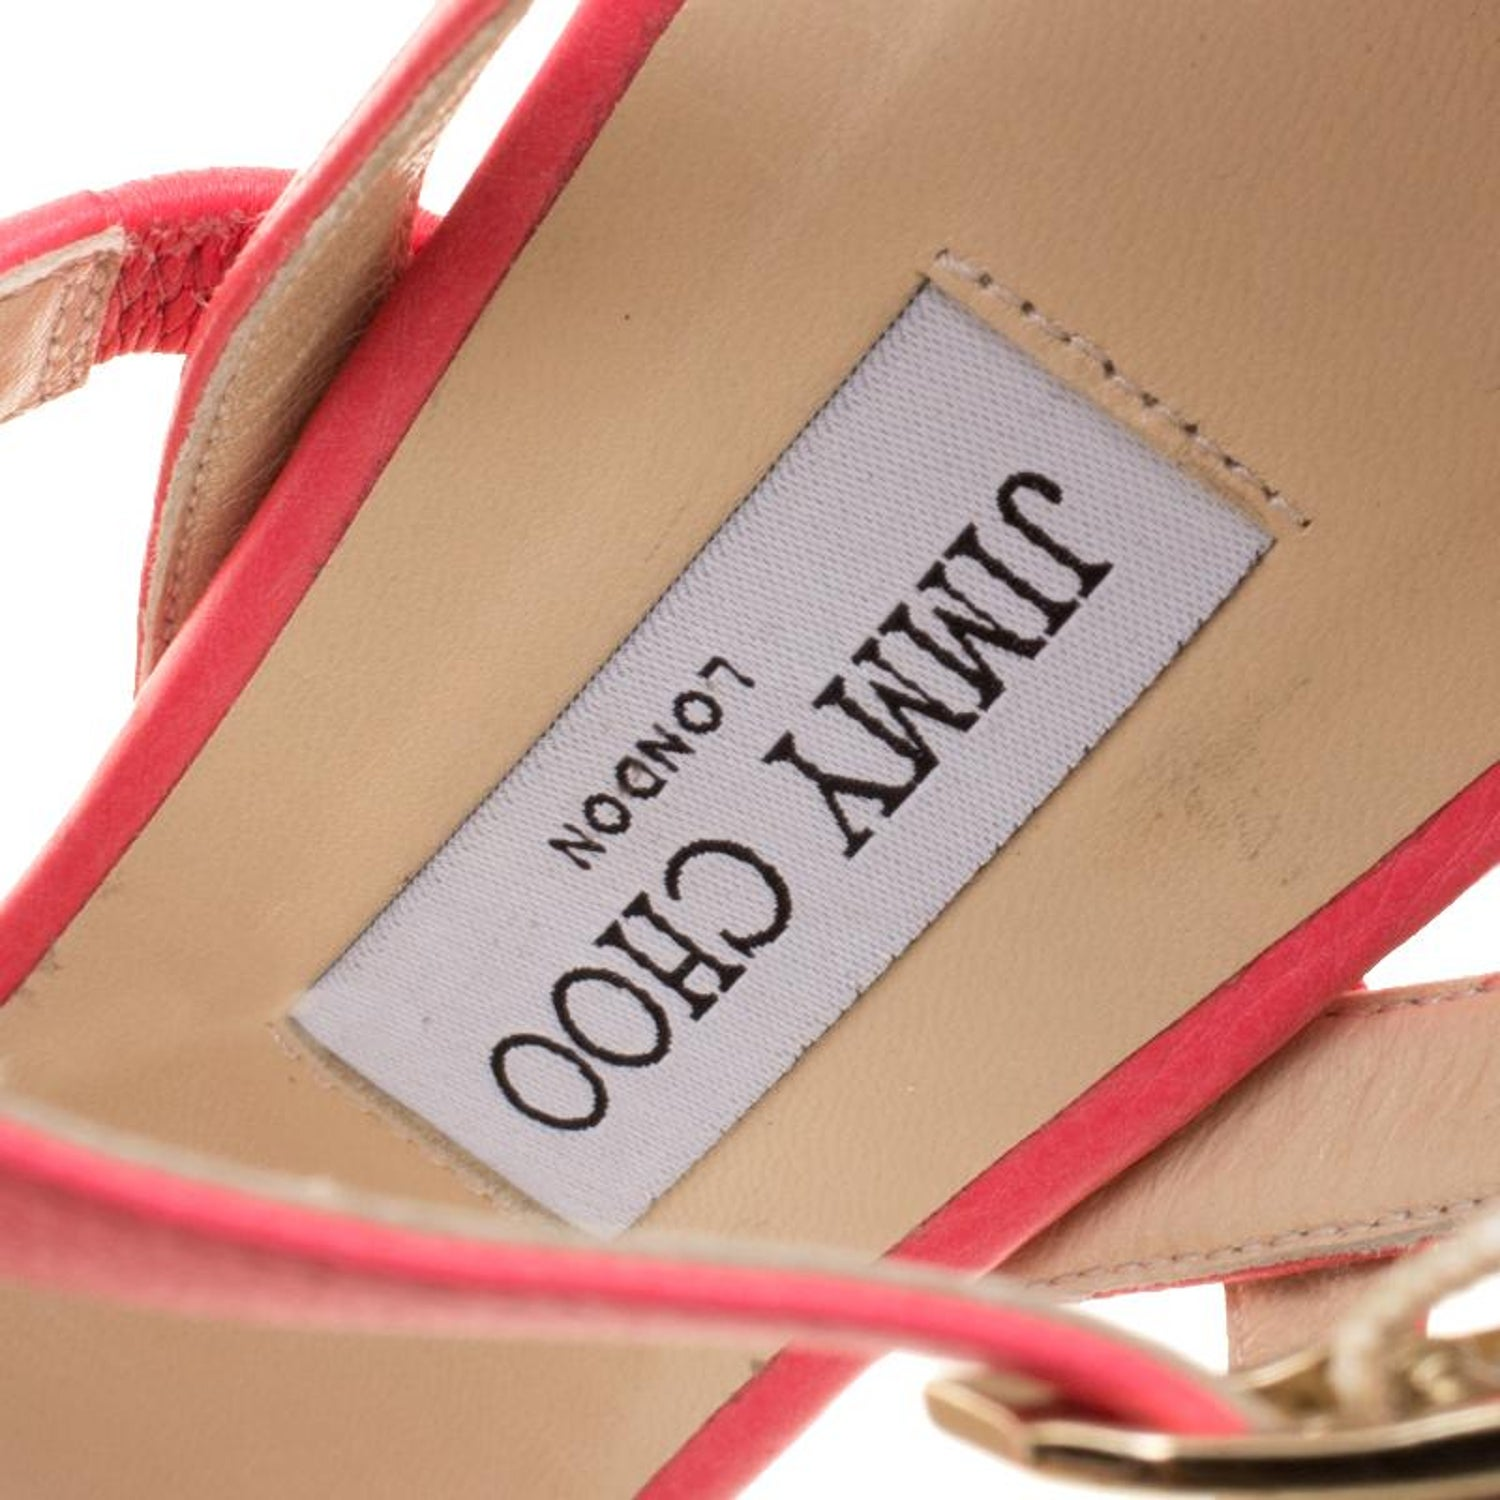 839be958d25 Jimmy Choo Pink Leather Dose Ankle Strap Sandals Size 41 For Sale at 1stdibs